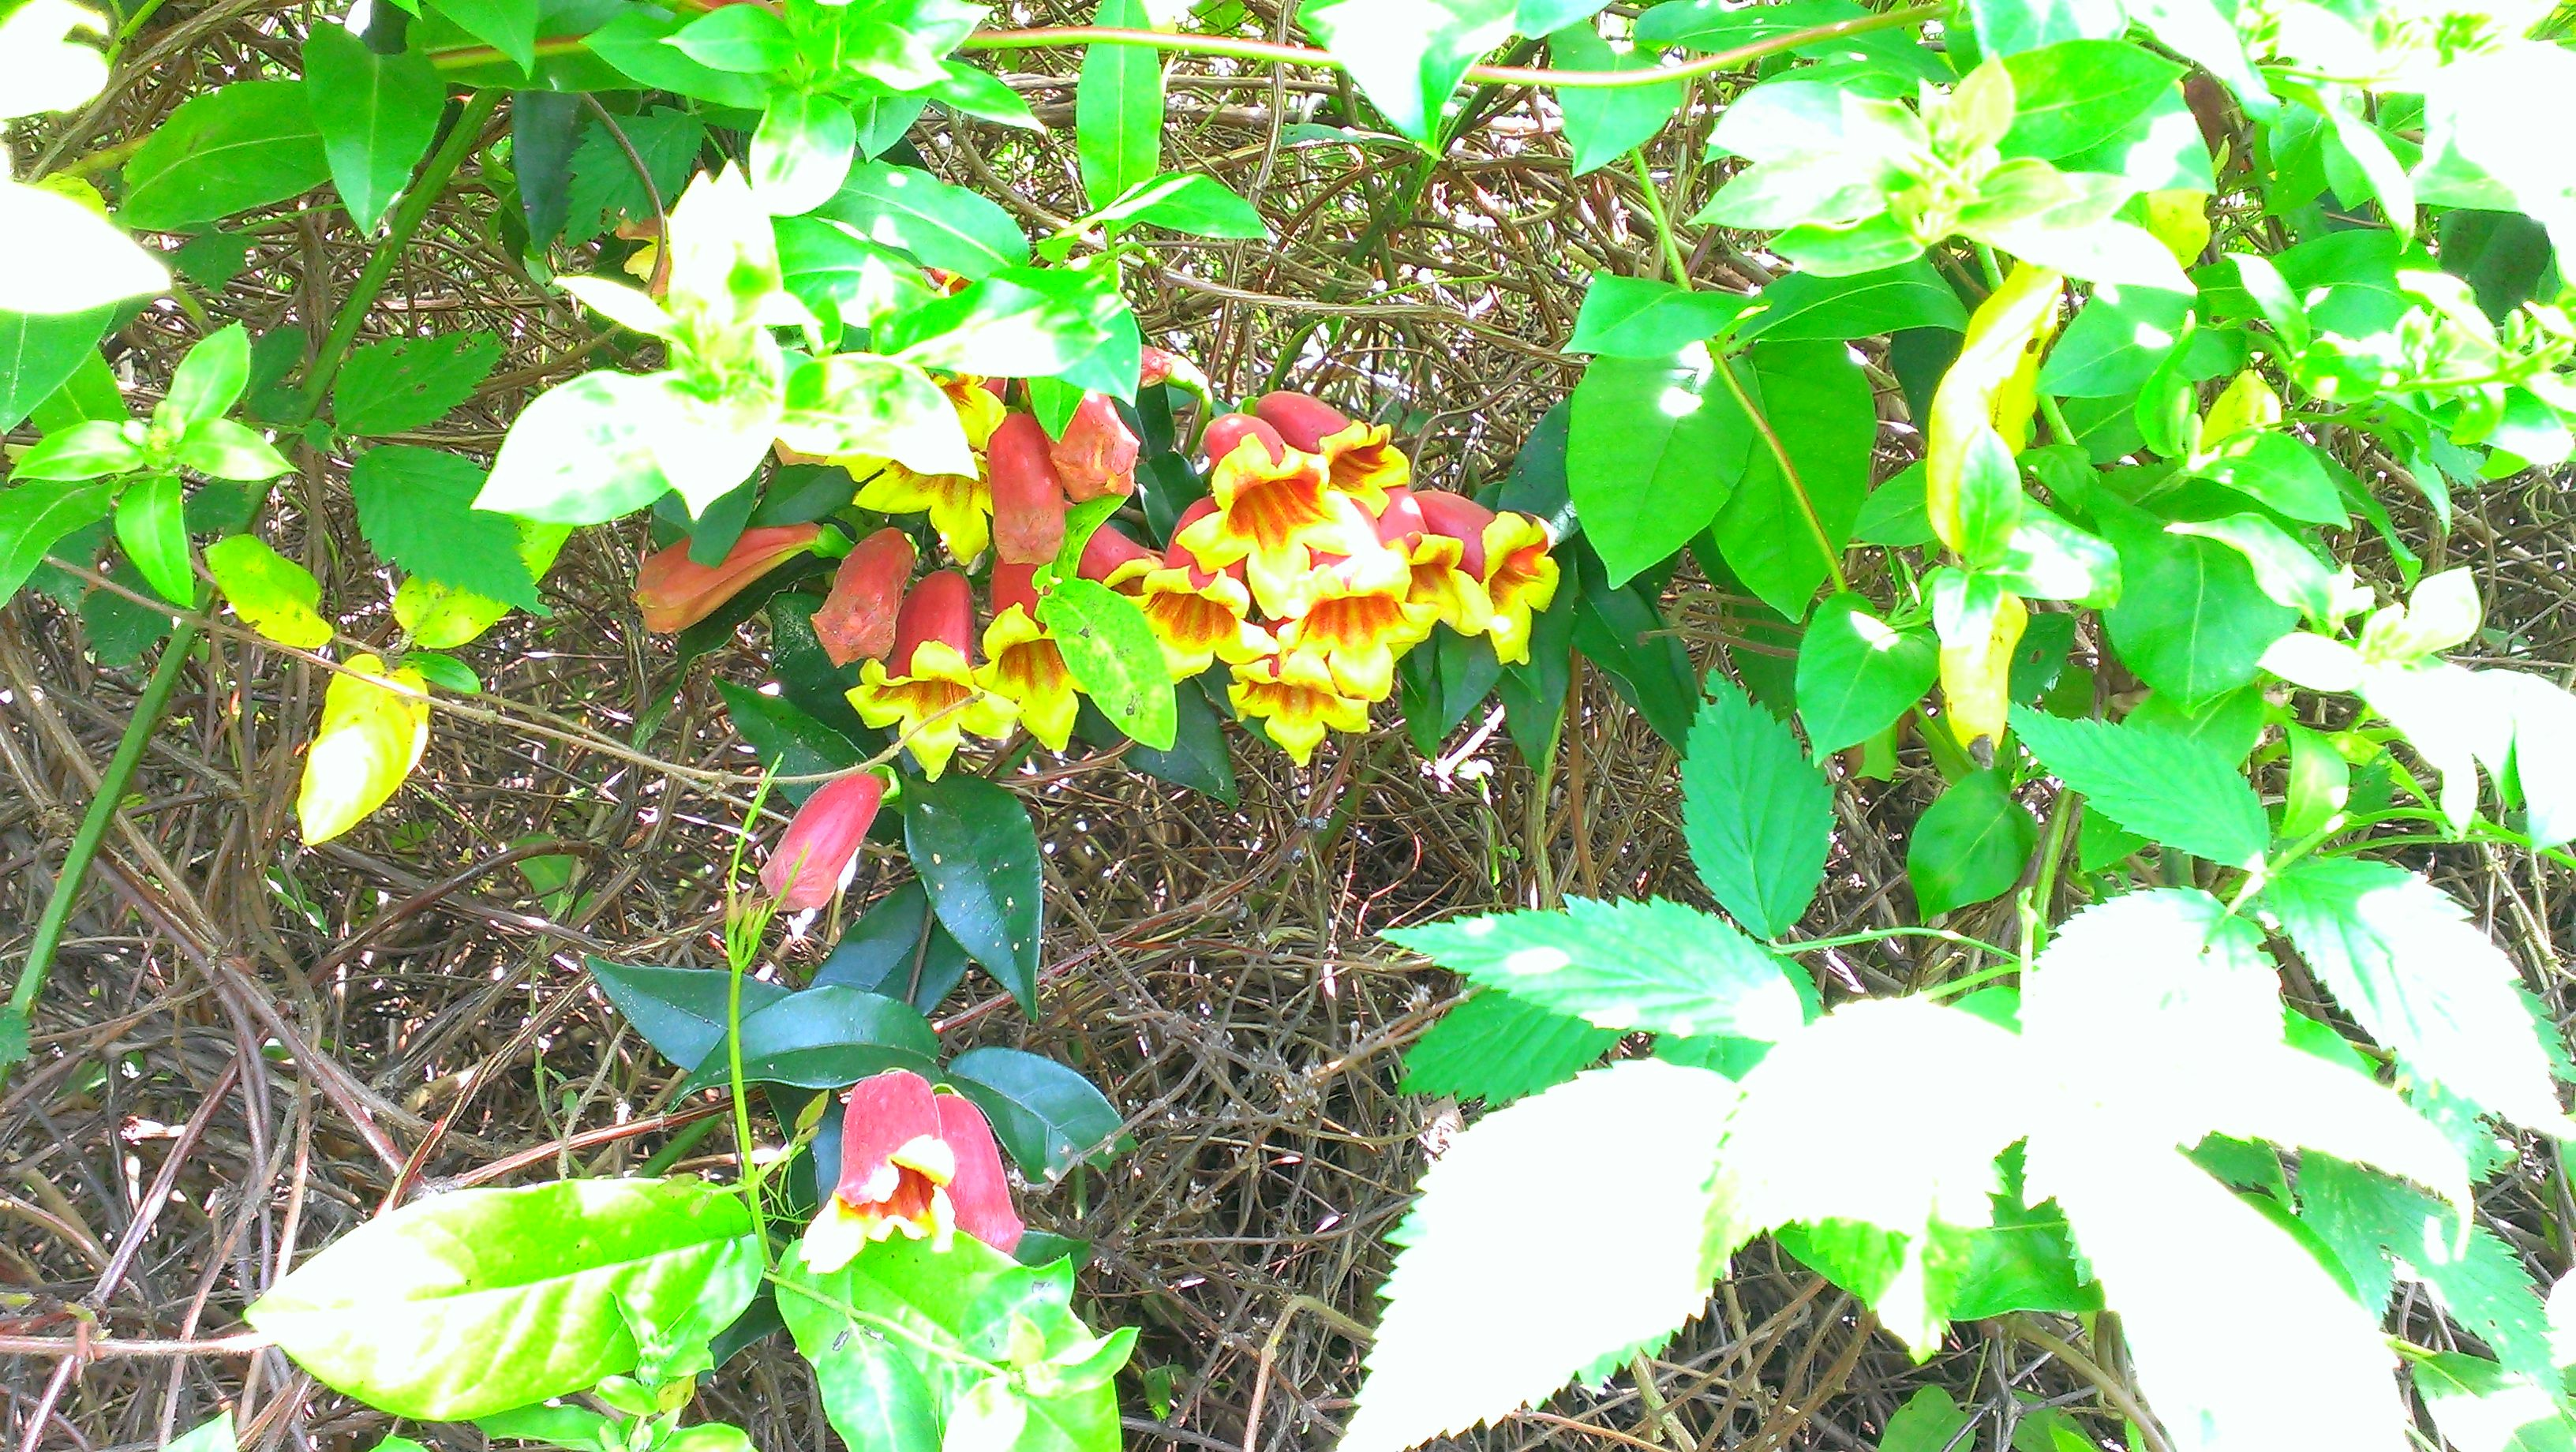 Bell Shaped Flowers Of Maroon And Yellow Growing On A Sprawling